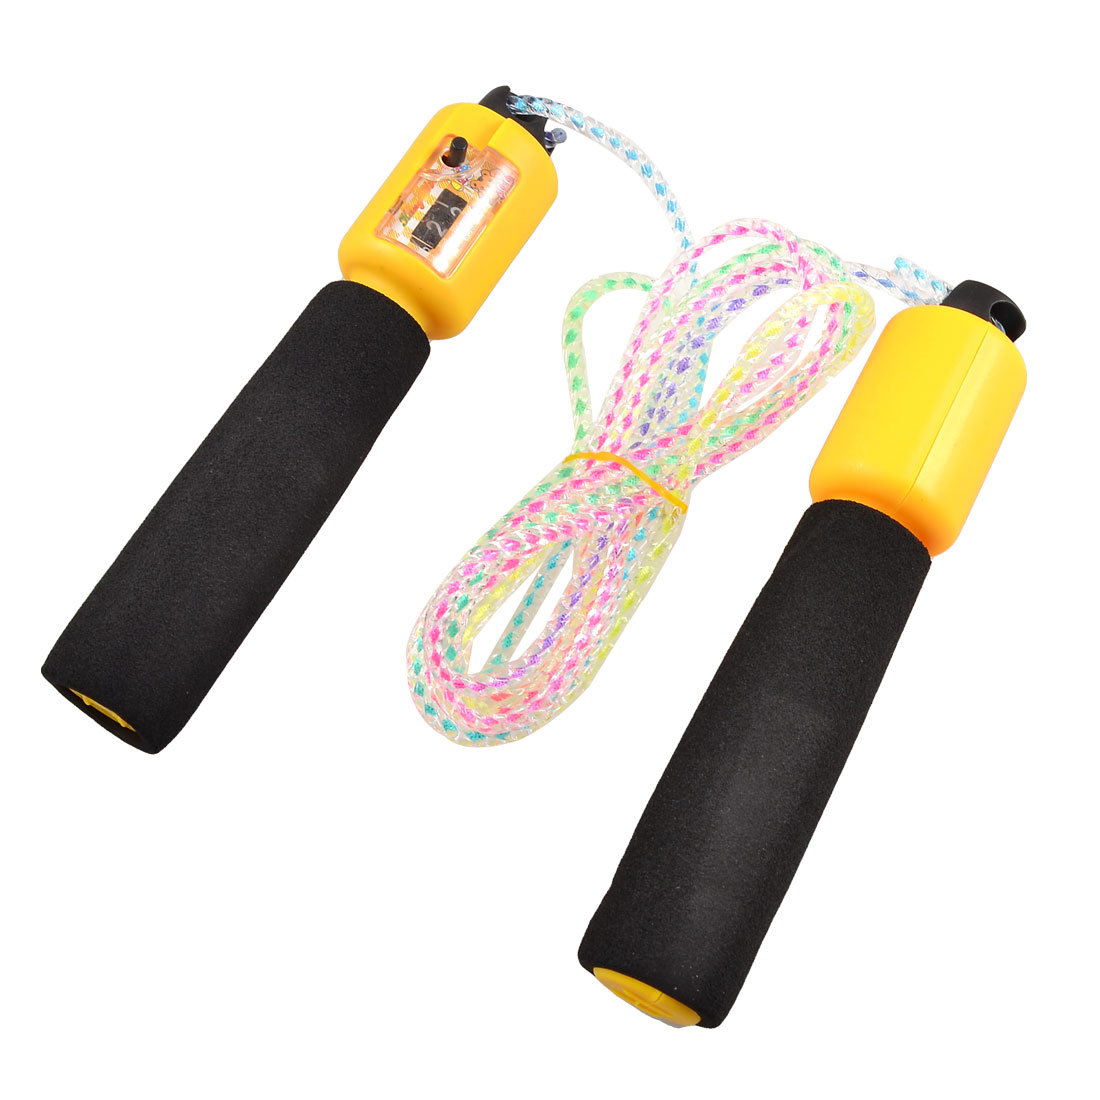 Gym Exercise Antislip Handle Counter Skip Jumping Rope Black Yellow 8.2 Ft Long